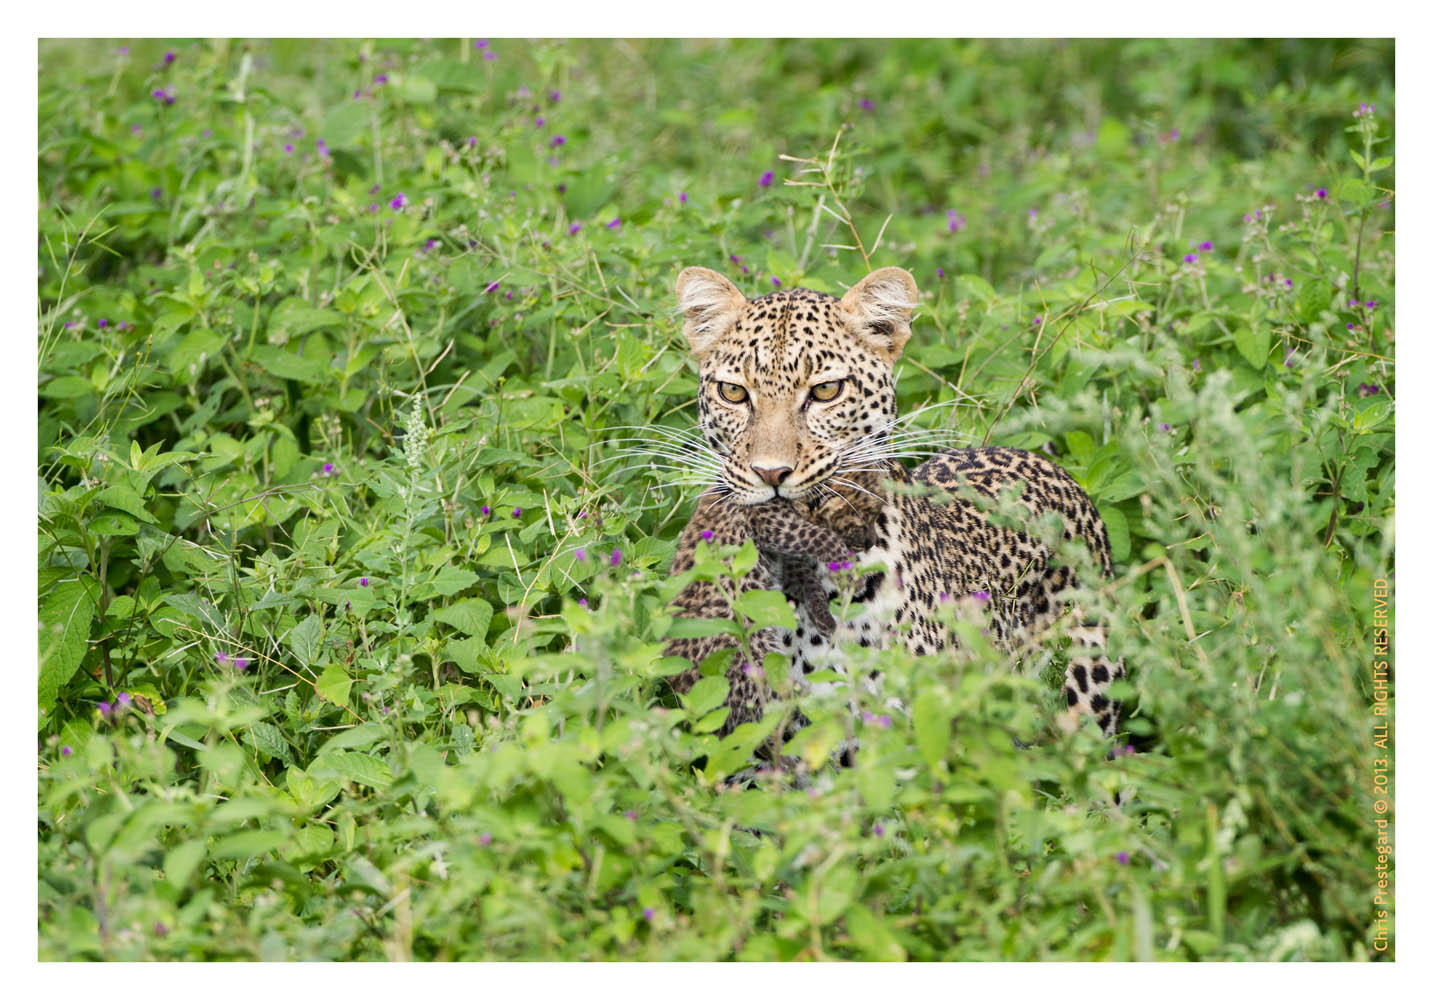 LeopardCub7288-Oct3-2013